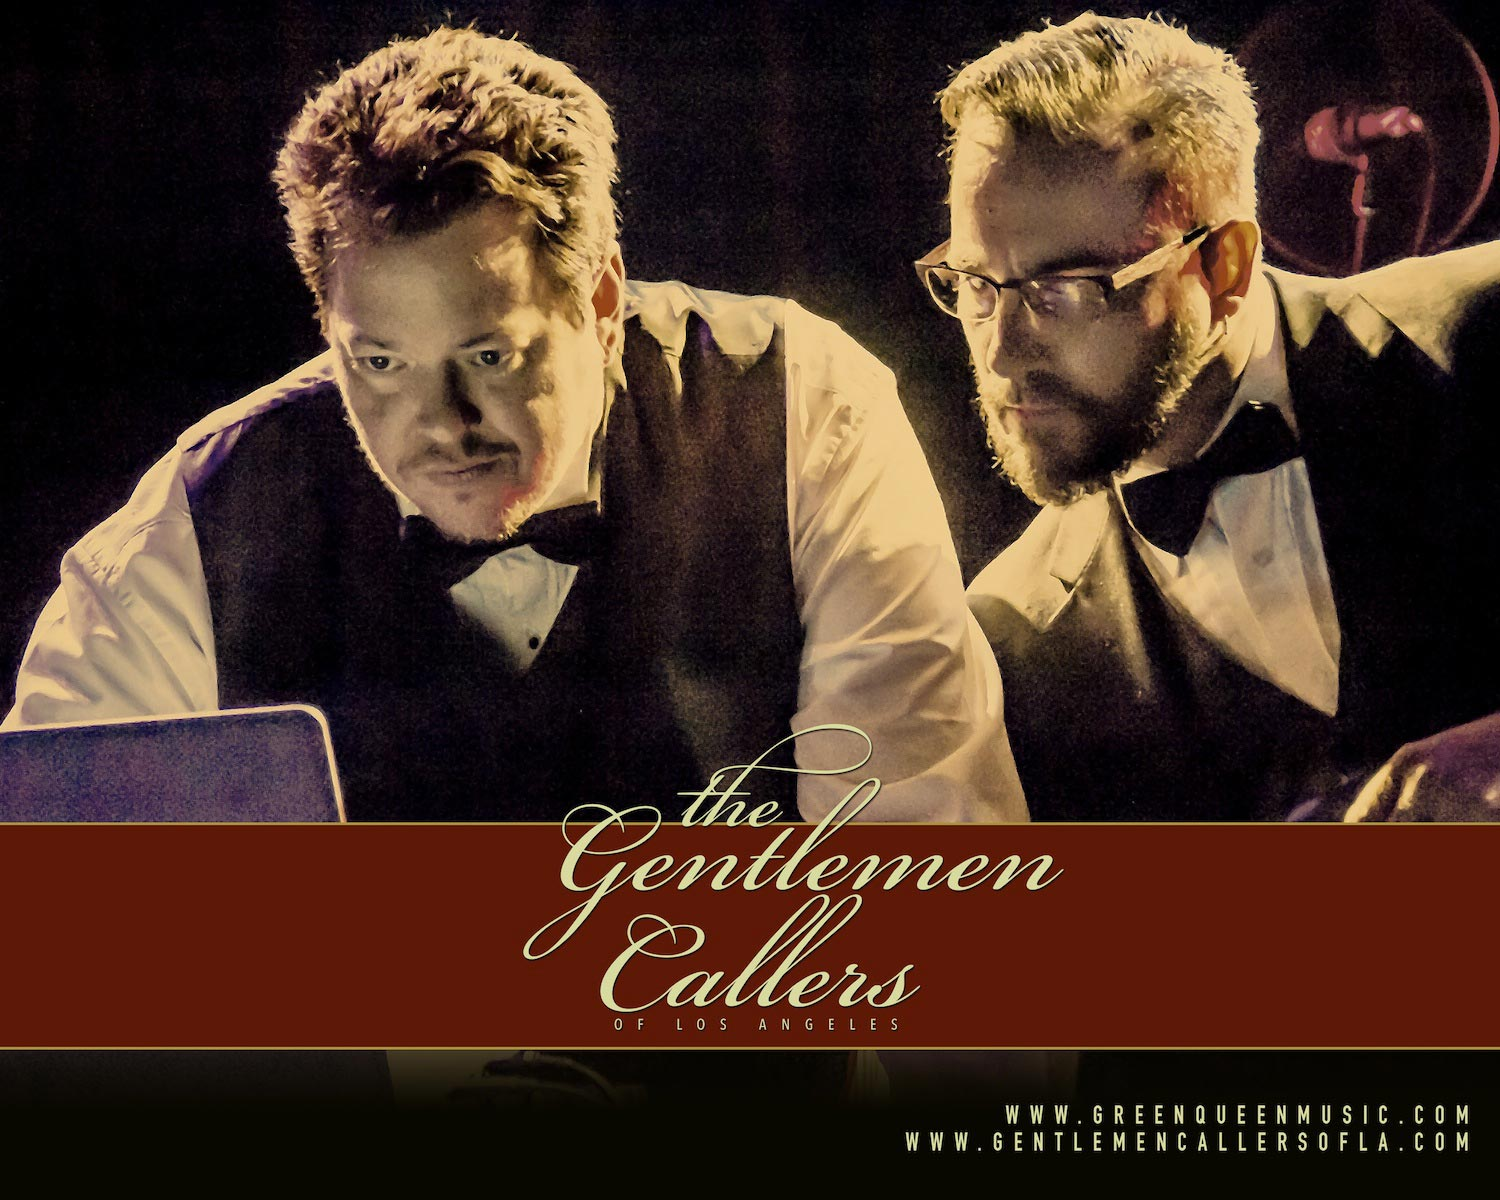 The Gentlemen Callers of LA